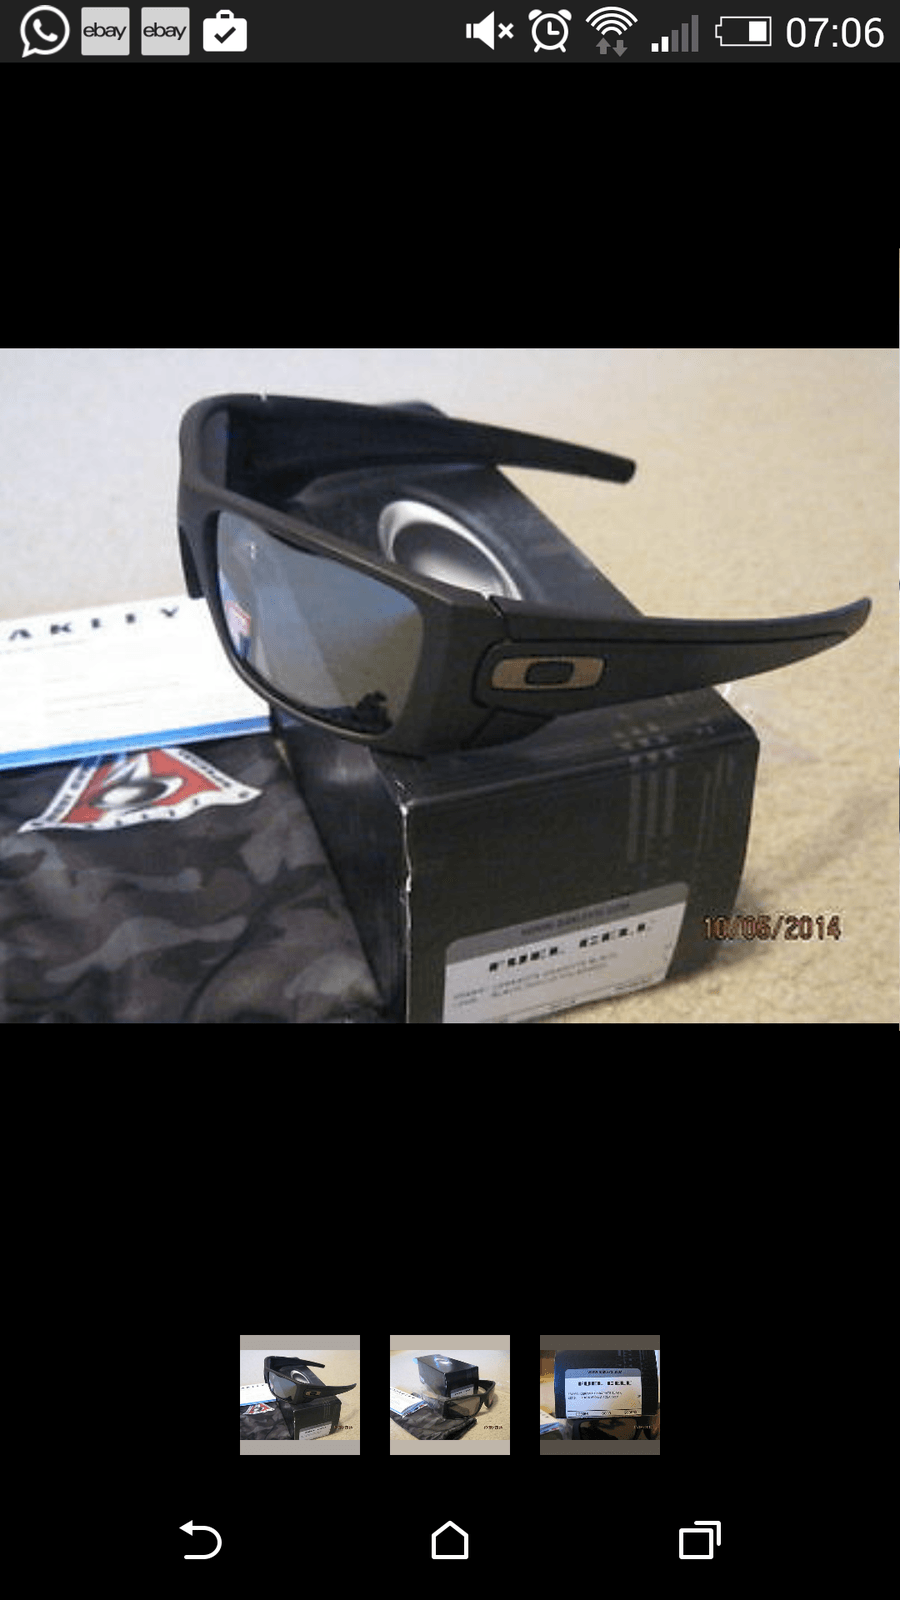 Cerakote Graphite Fuel Cell Black Iridium Polarized - screenshot_2014-11-20-07-06-59-png.115502.png